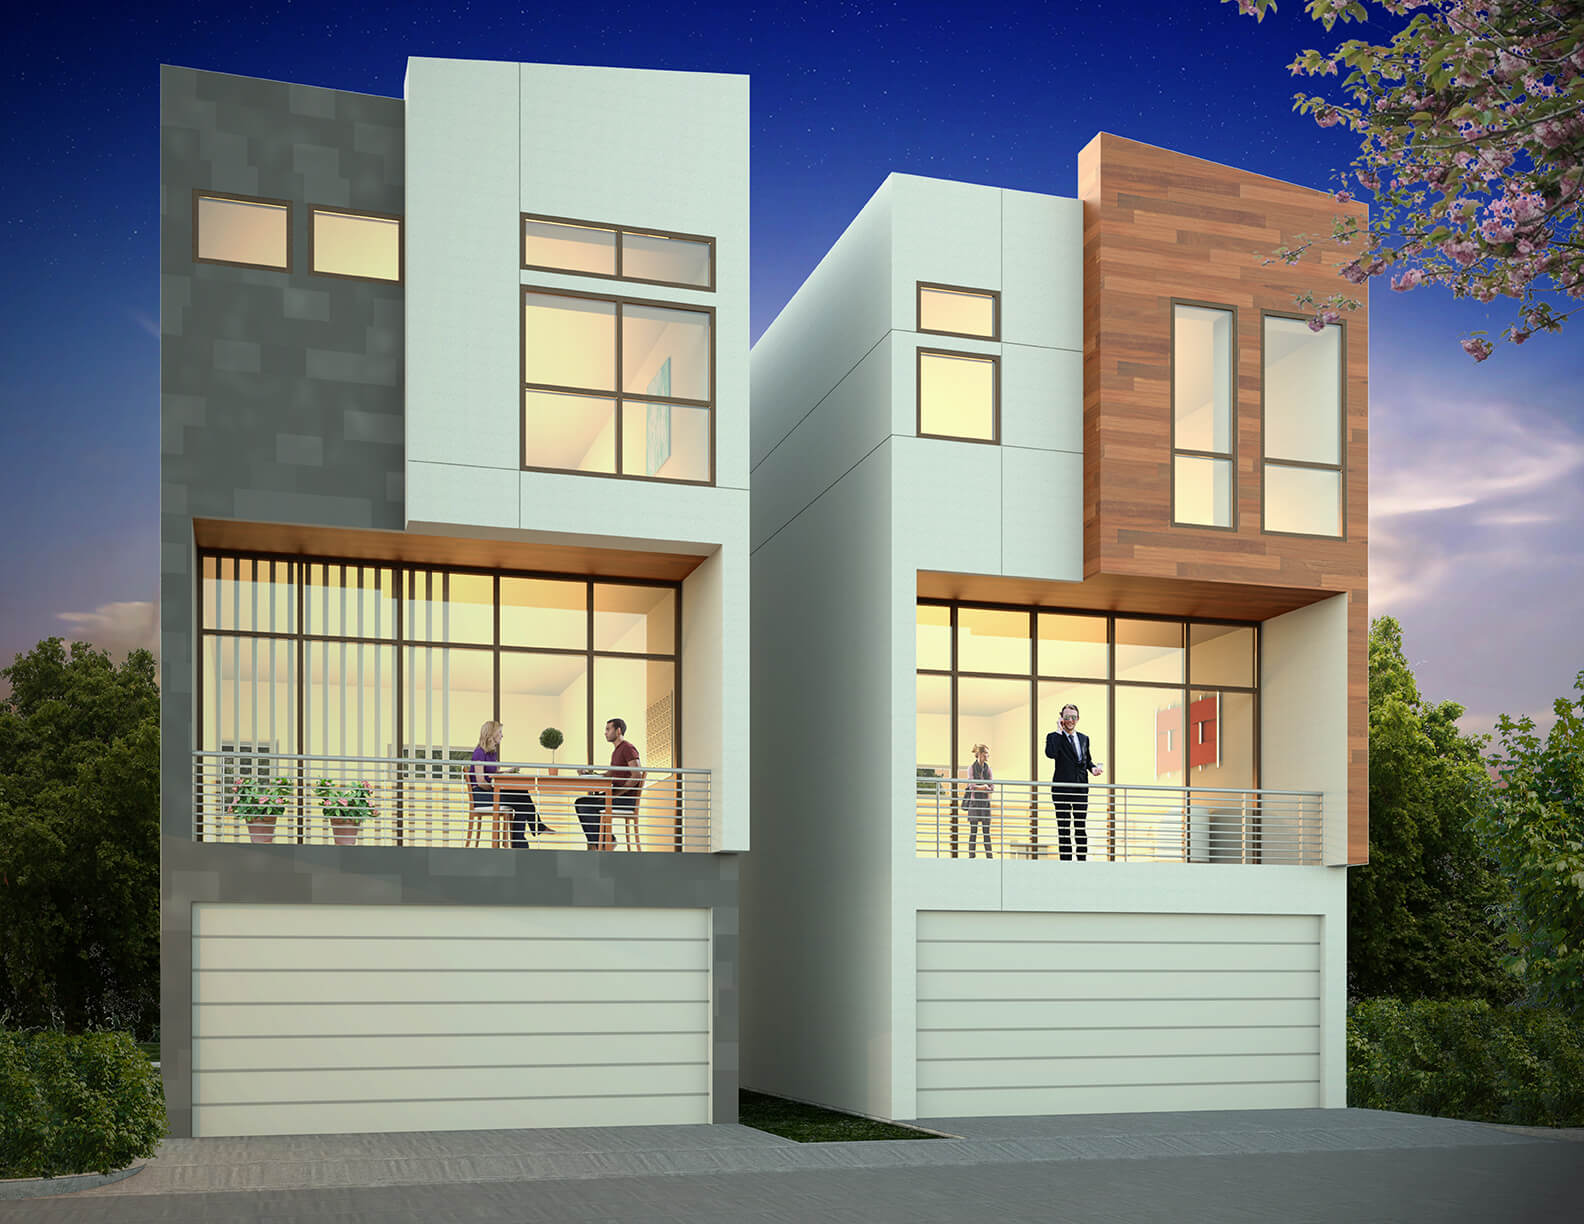 Surge Homes Reveals New Home Designs And Floorplans - Single family home designs